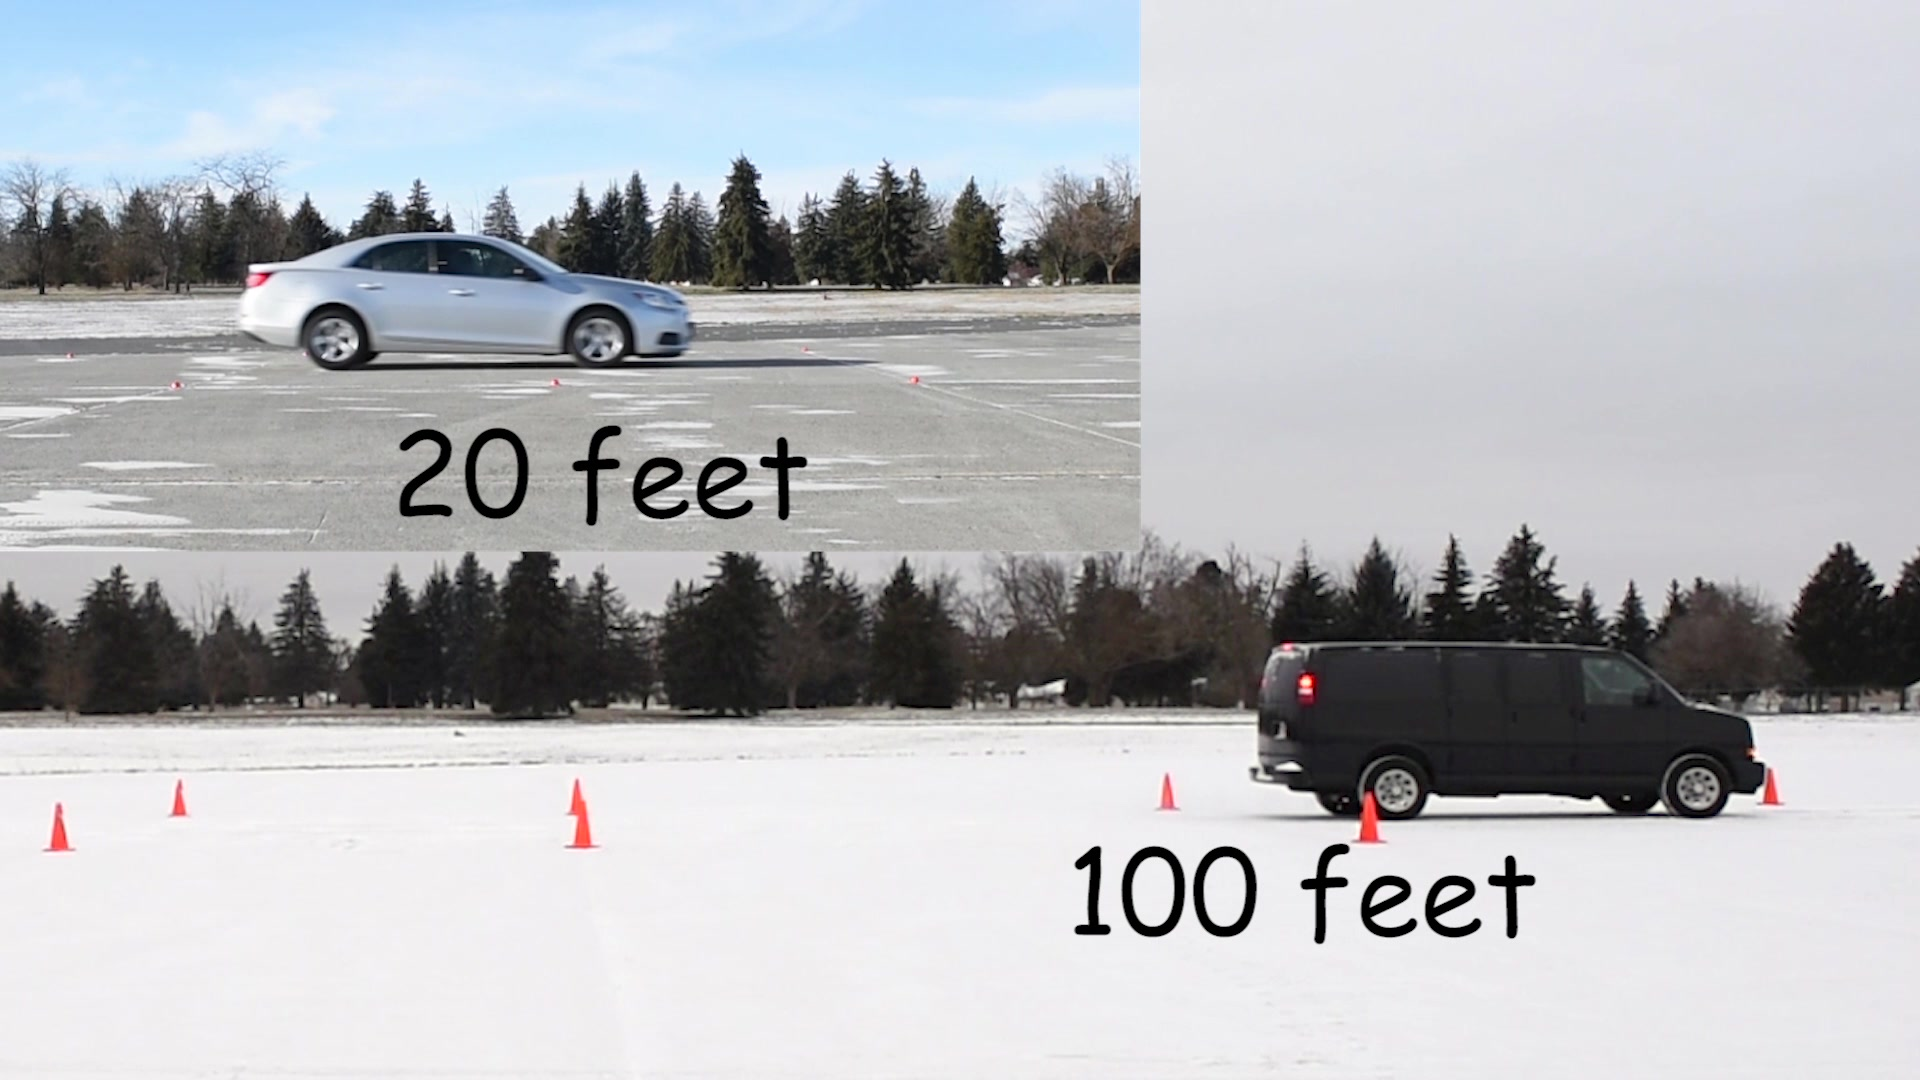 92nd Air Refueling Wing Safety Office gives tips on how to safely drive on icy roads during the winter season.